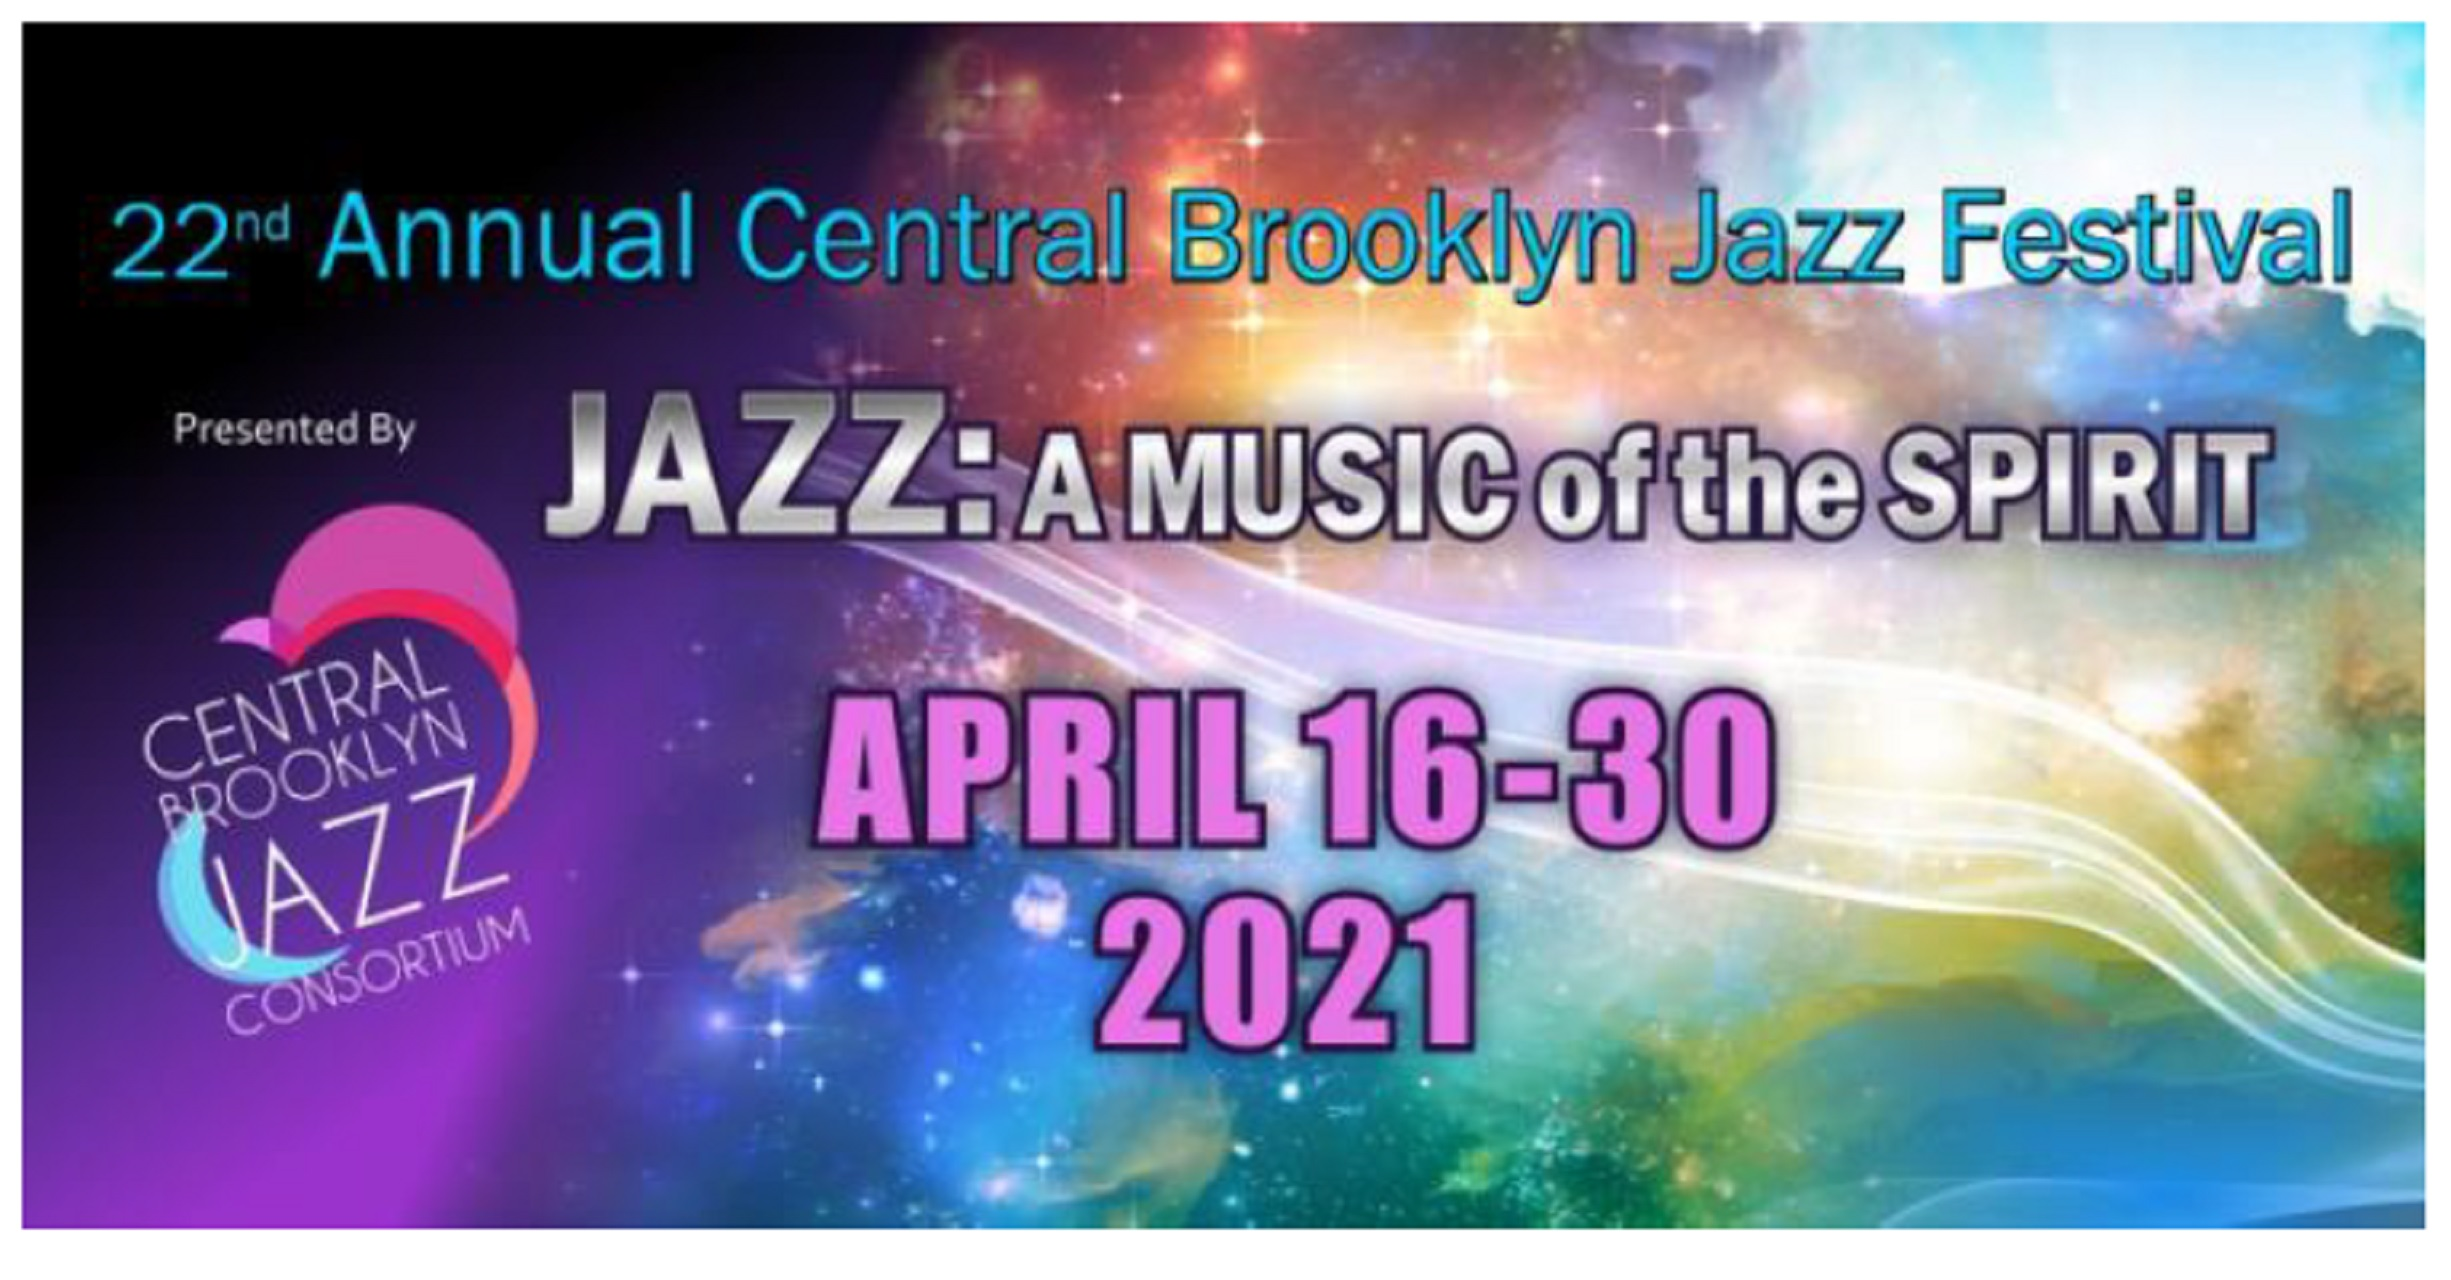 22nd Annual Central Brooklyn Jazz FestivalJAZZ: A Music of the SPIRIT